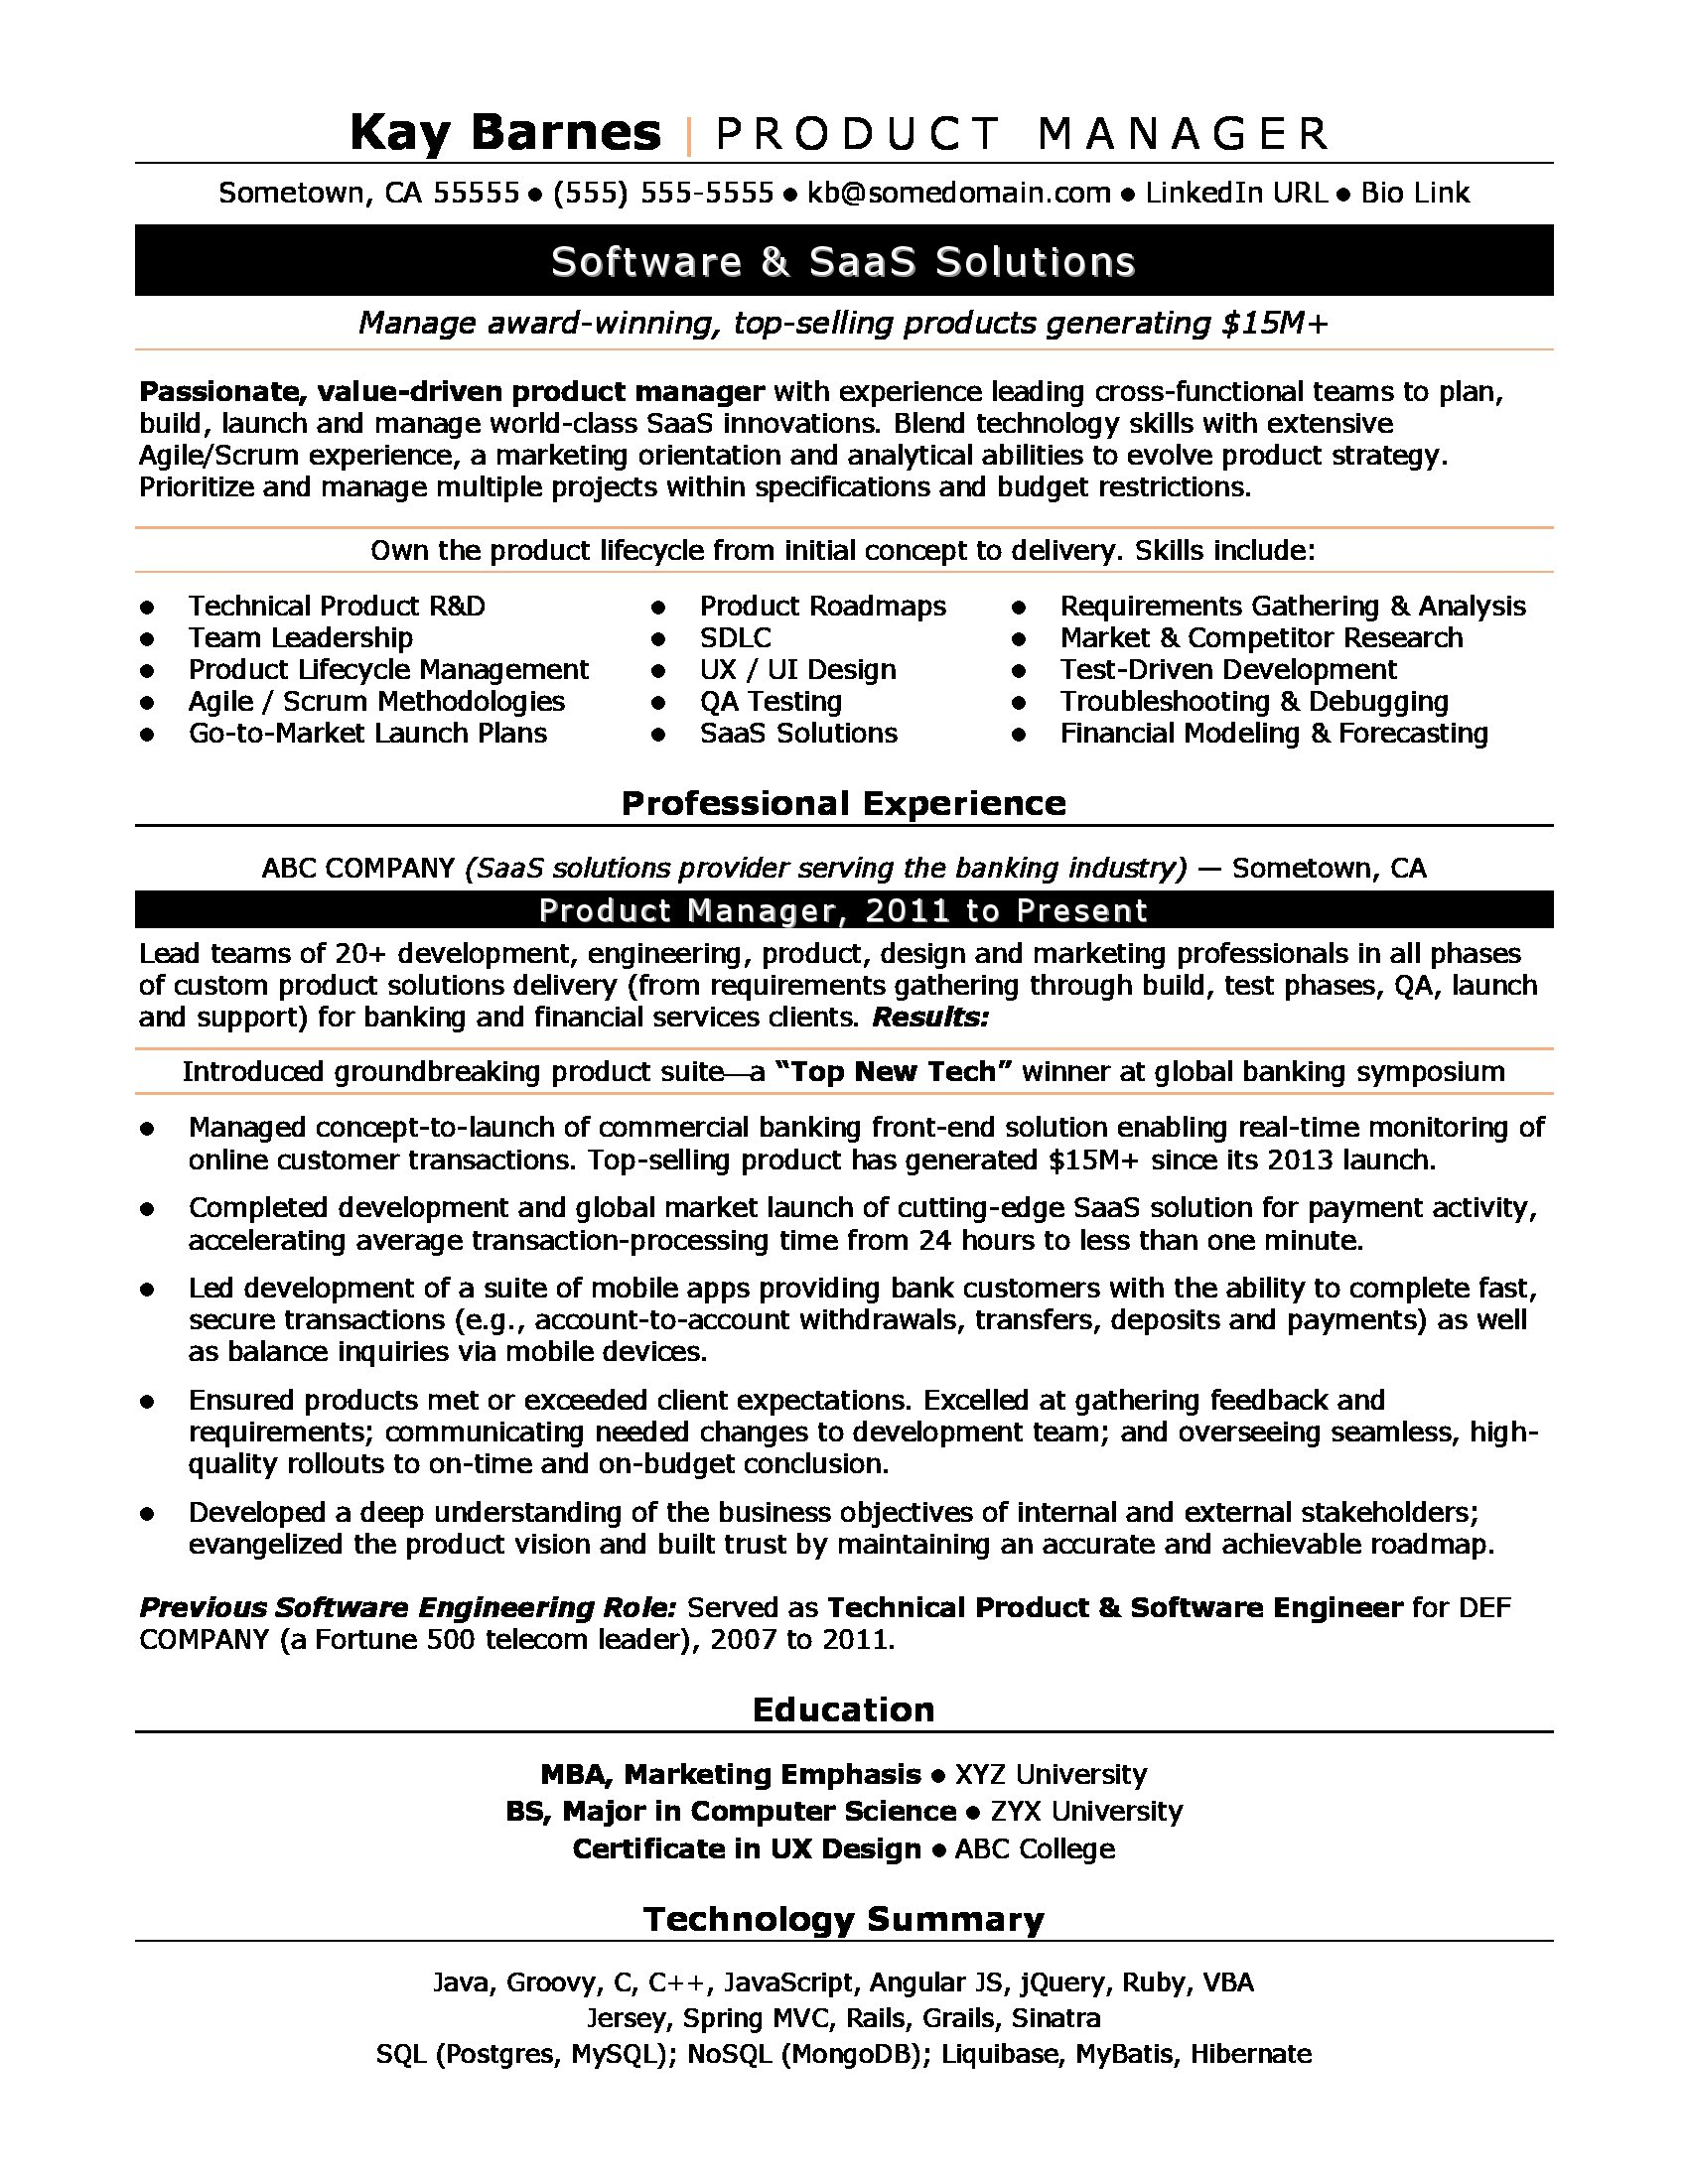 product manager resume sample monster software engineering productmanager realtor job Resume Software Engineering Manager Resume